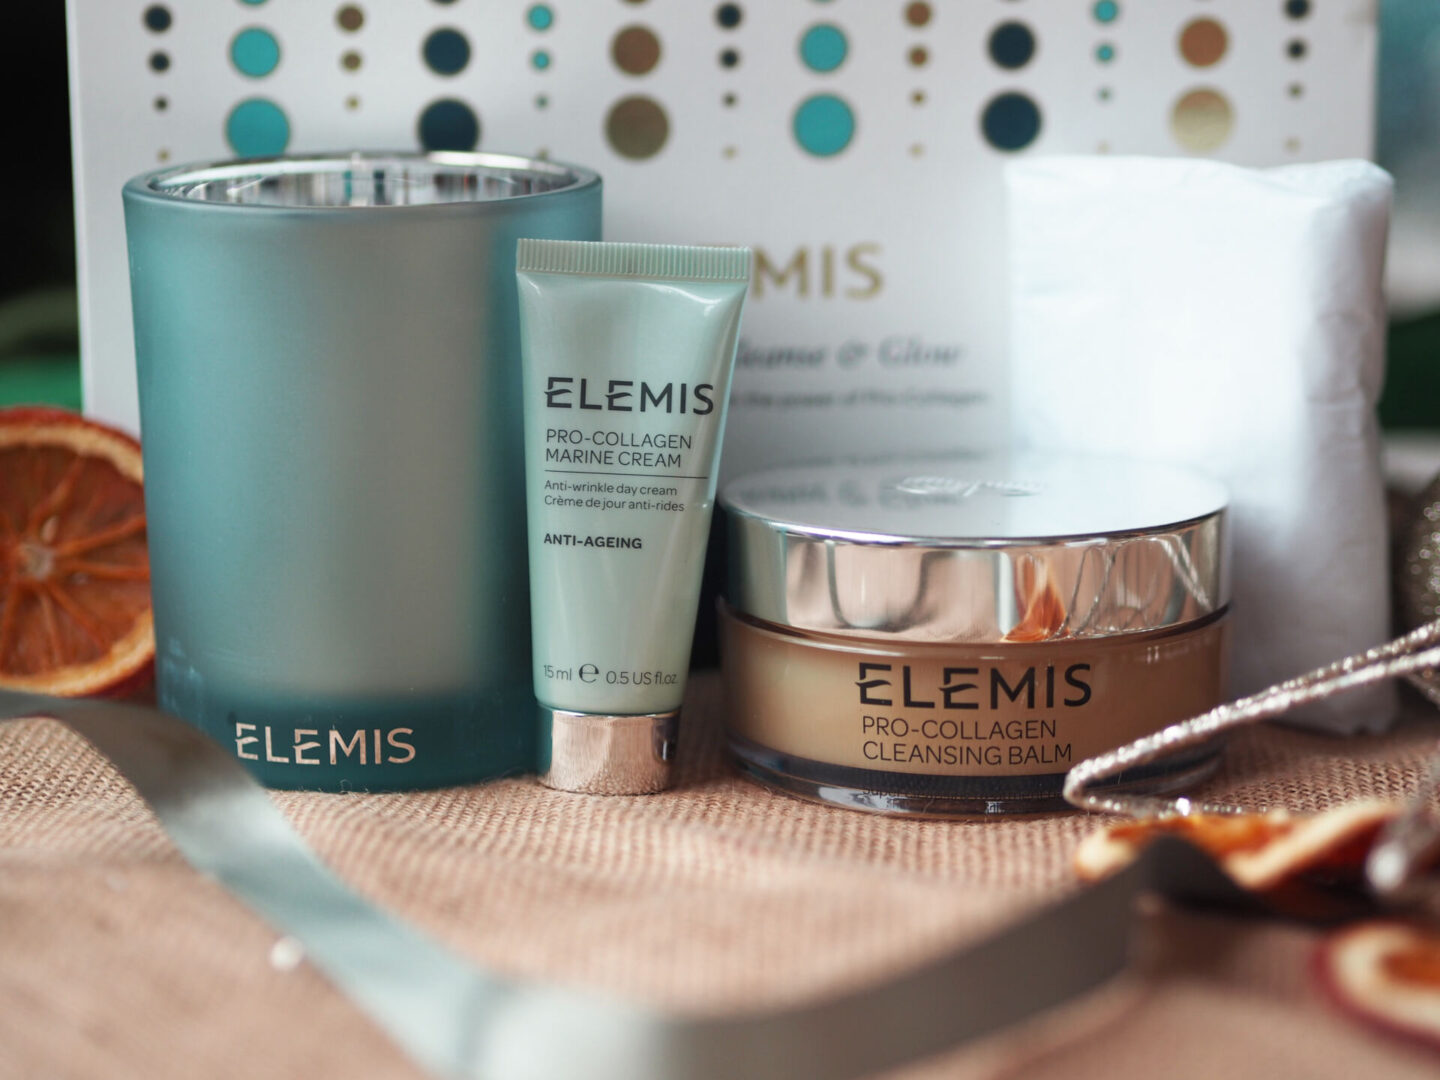 Elemis Pro Collagen Cleanse and Glow Christmas 2020